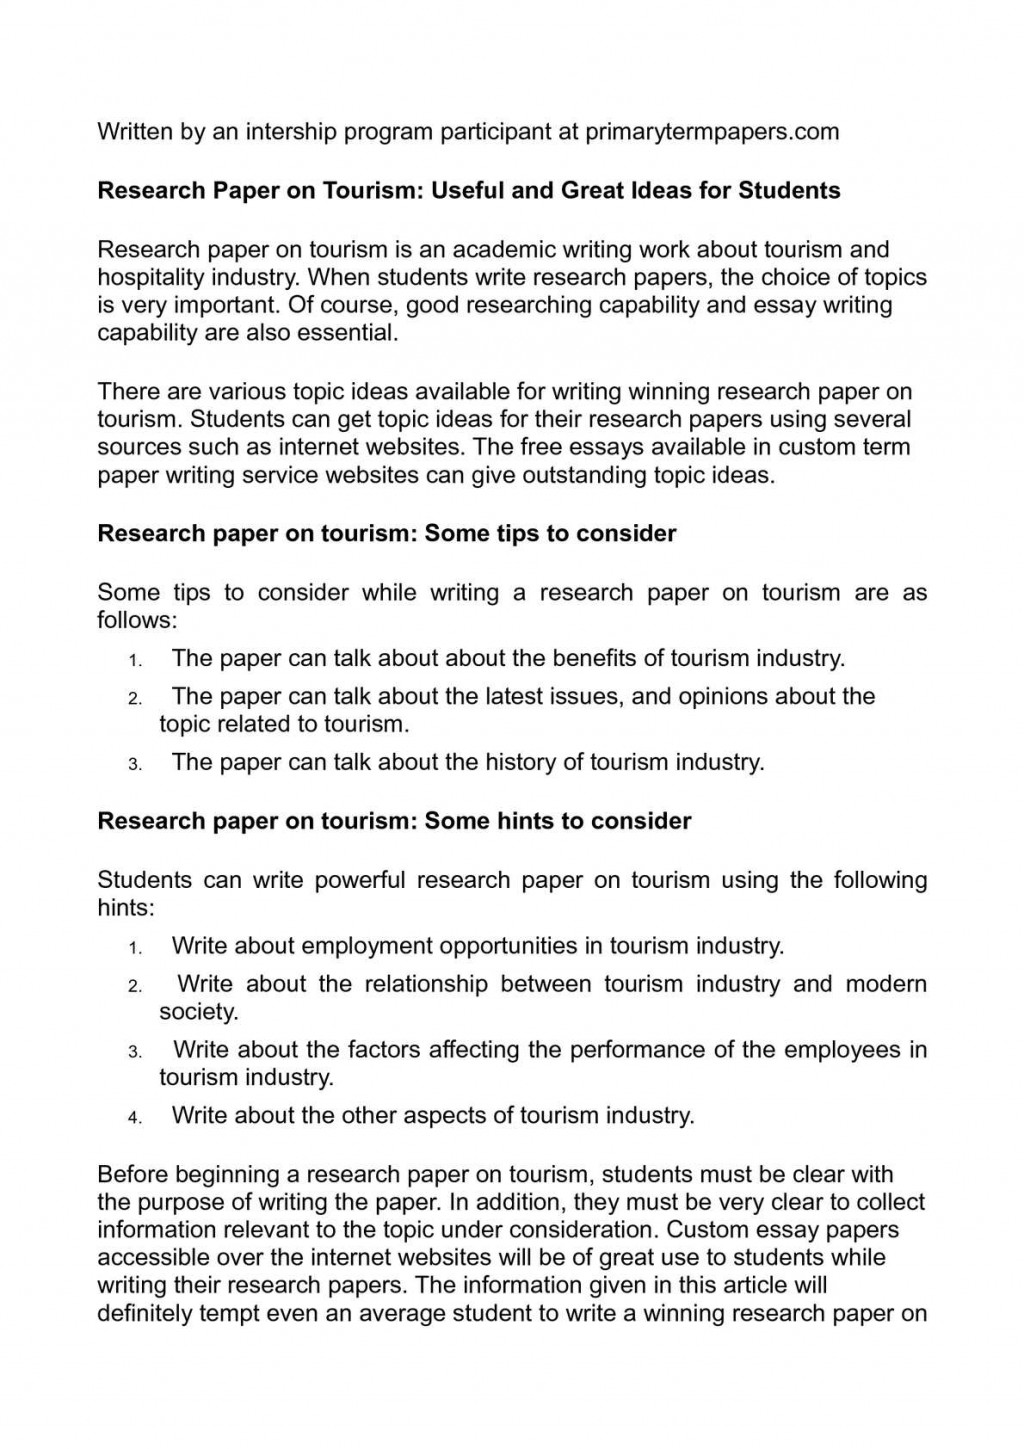 005 P1 Research Paper Best Free Outstanding Websites Large